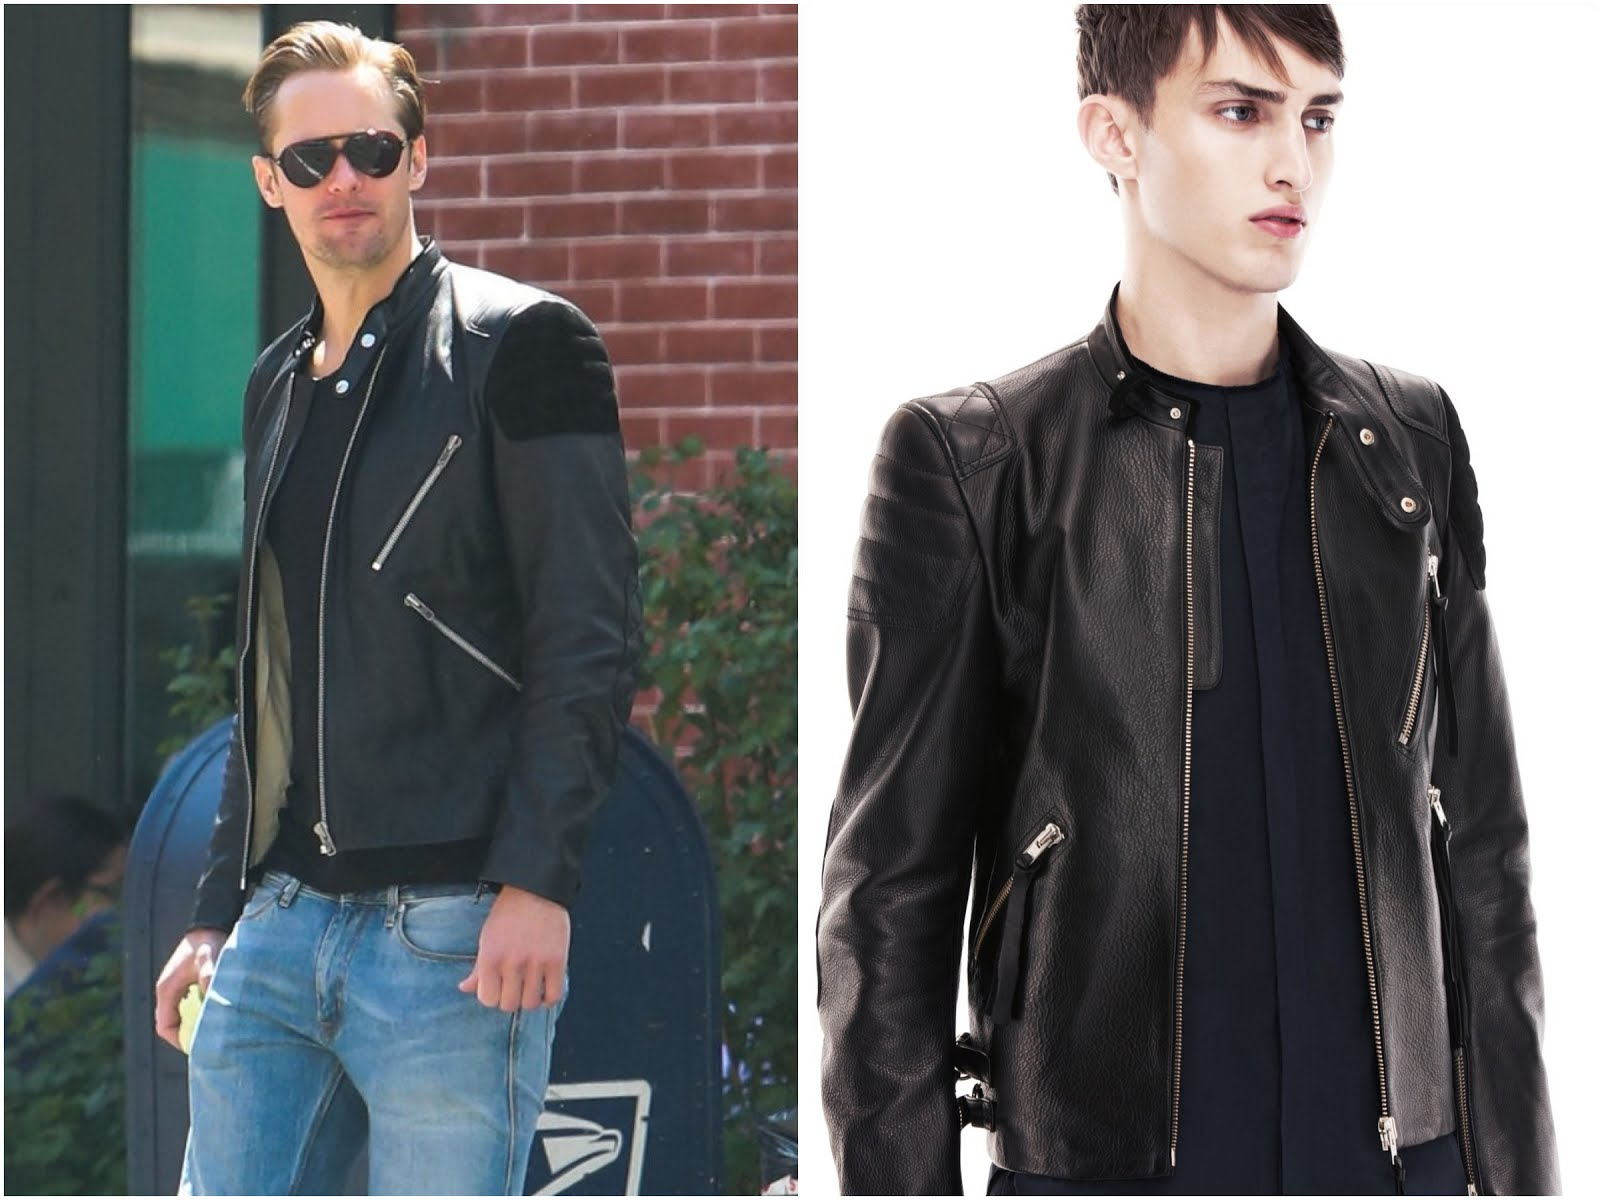 00O00 Menswear Blog: Alexander Skarsgard in Acne Studios 'Oliver' leather and suede biker jacket - New York Street Style